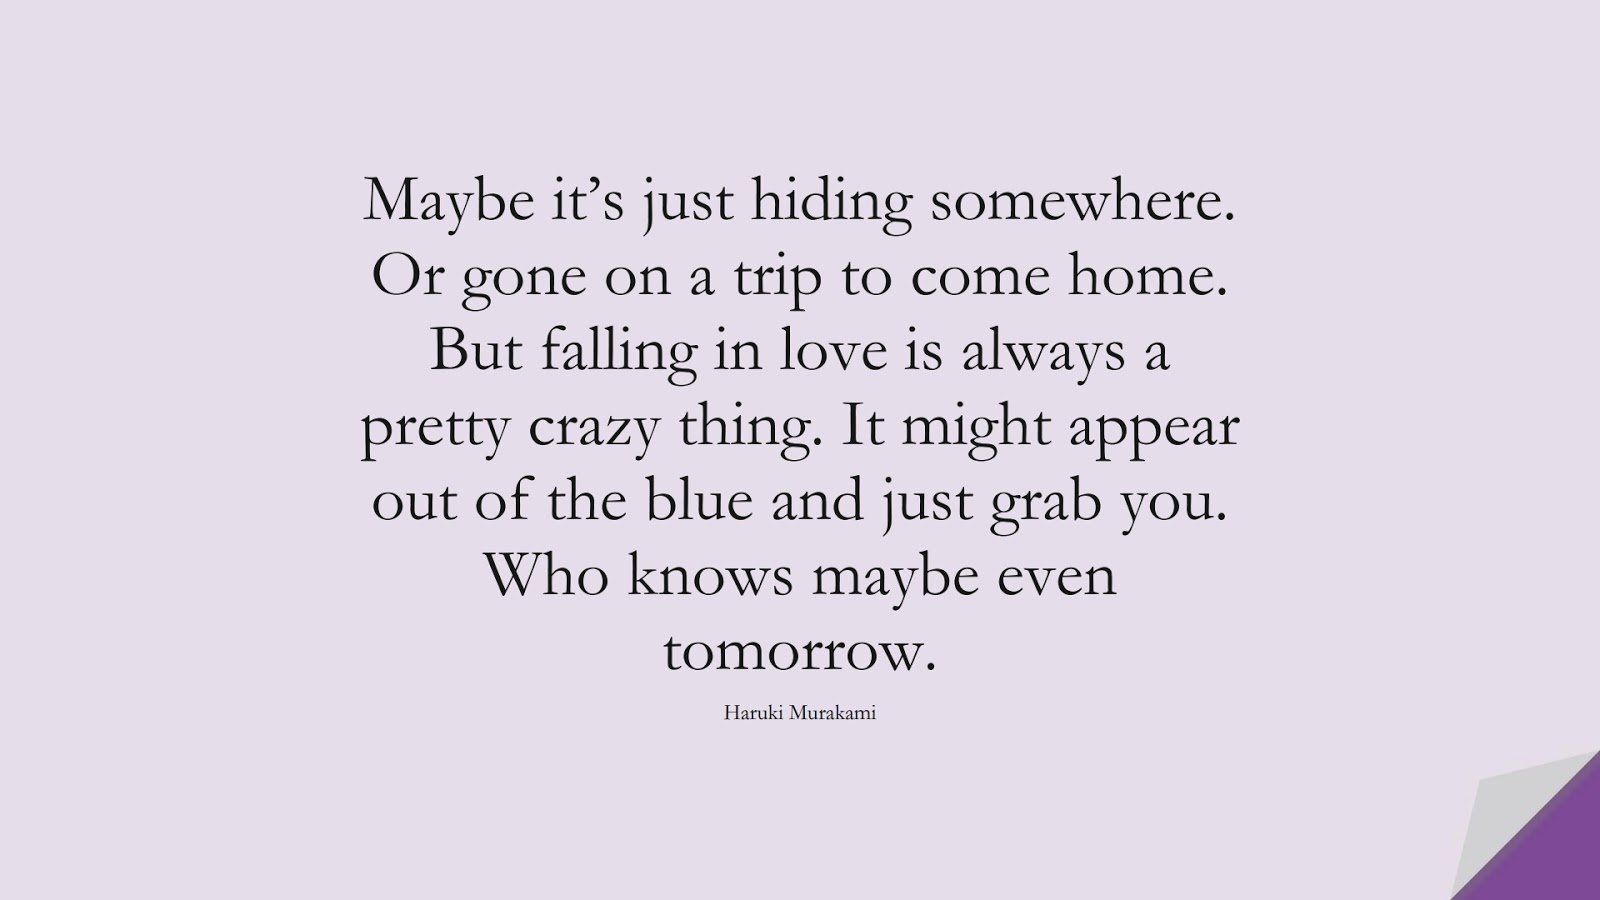 Maybe it's just hiding somewhere. Or gone on a trip to come home. But falling in love is always a pretty crazy thing. It might appear out of the blue and just grab you. Who knows maybe even tomorrow. (Haruki Murakami);  #LoveQuotes